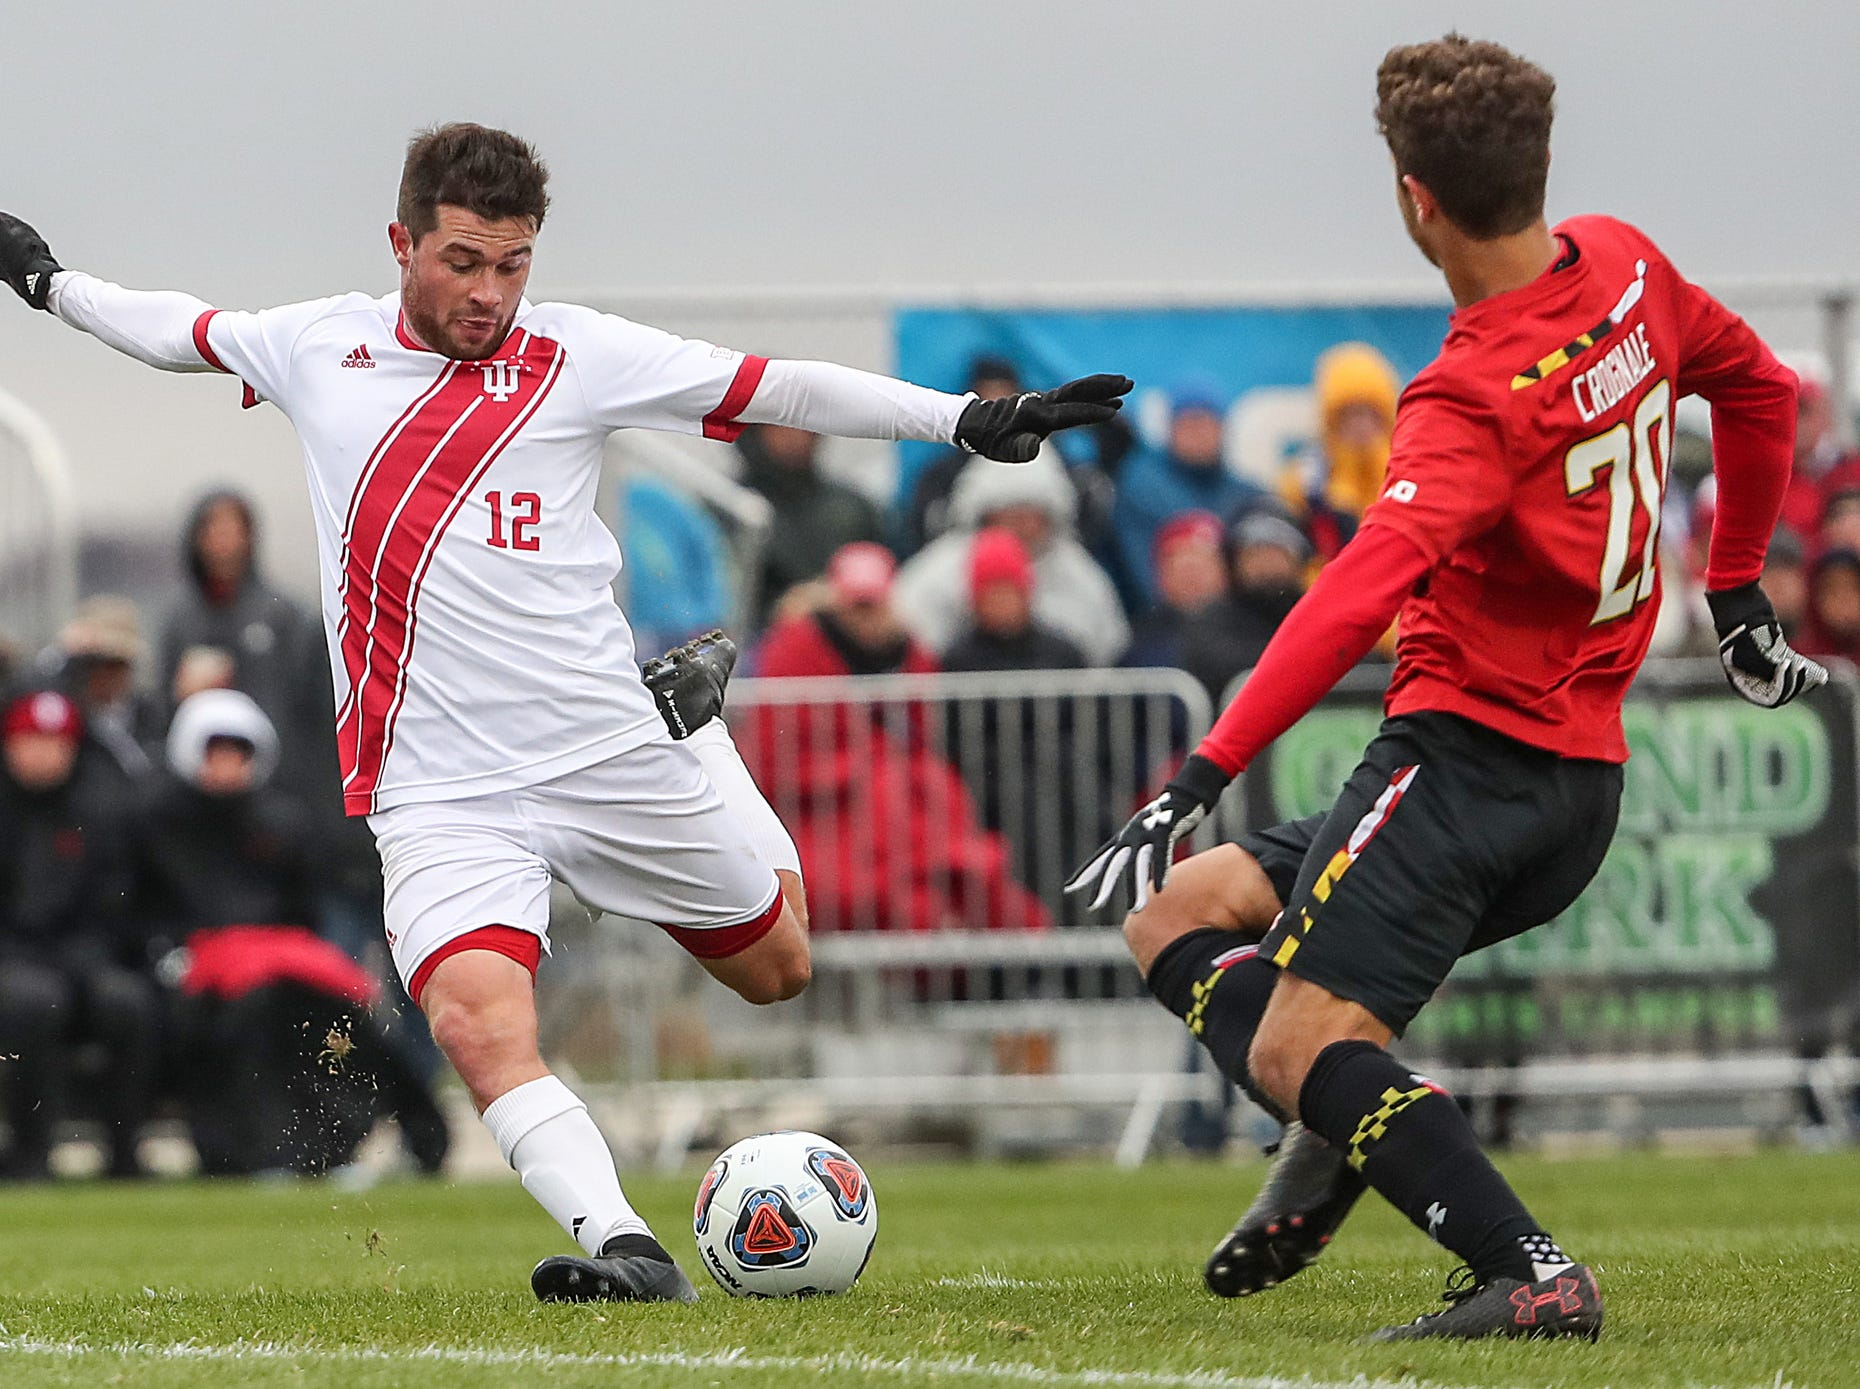 Maryland Terrapins midfielder Eli Crognale (20) defends as Indiana Hoosiers Austin Panchot (12) takes an successful shot during the first half of Big Ten semifinals at Grand Park in Westfield, Ind., Friday, Nov. 9, 2018. Indiana and Maryland tied 1-1, with the Hoosiers advancing in penalty kicks, 4-3.